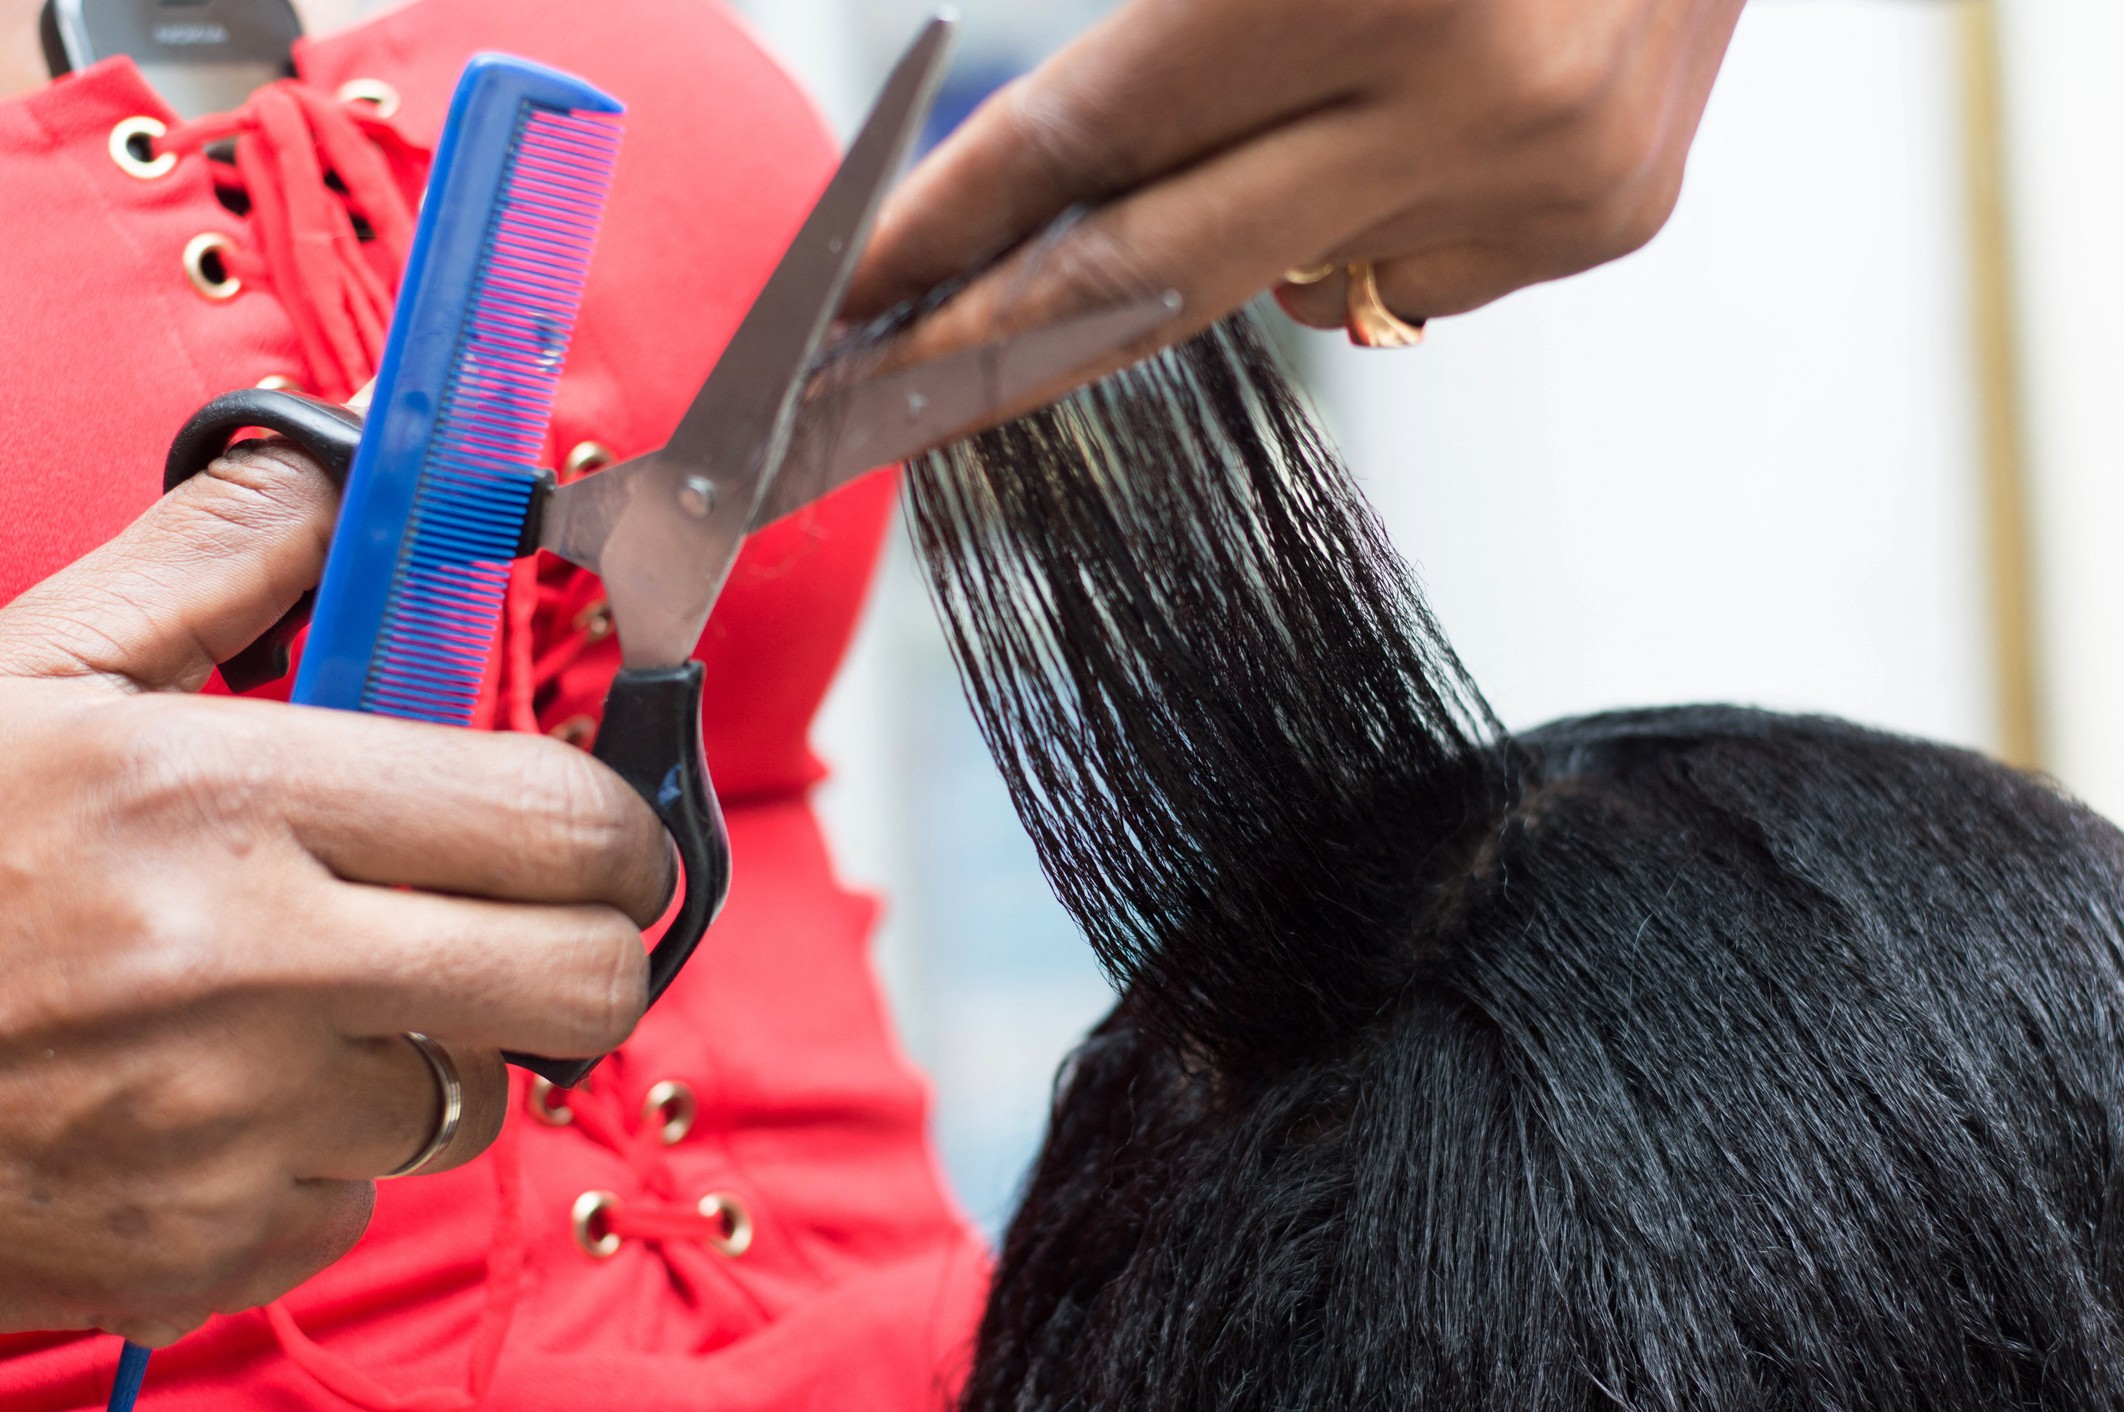 A closeup photo of a hair stylist cutting a client's hair.